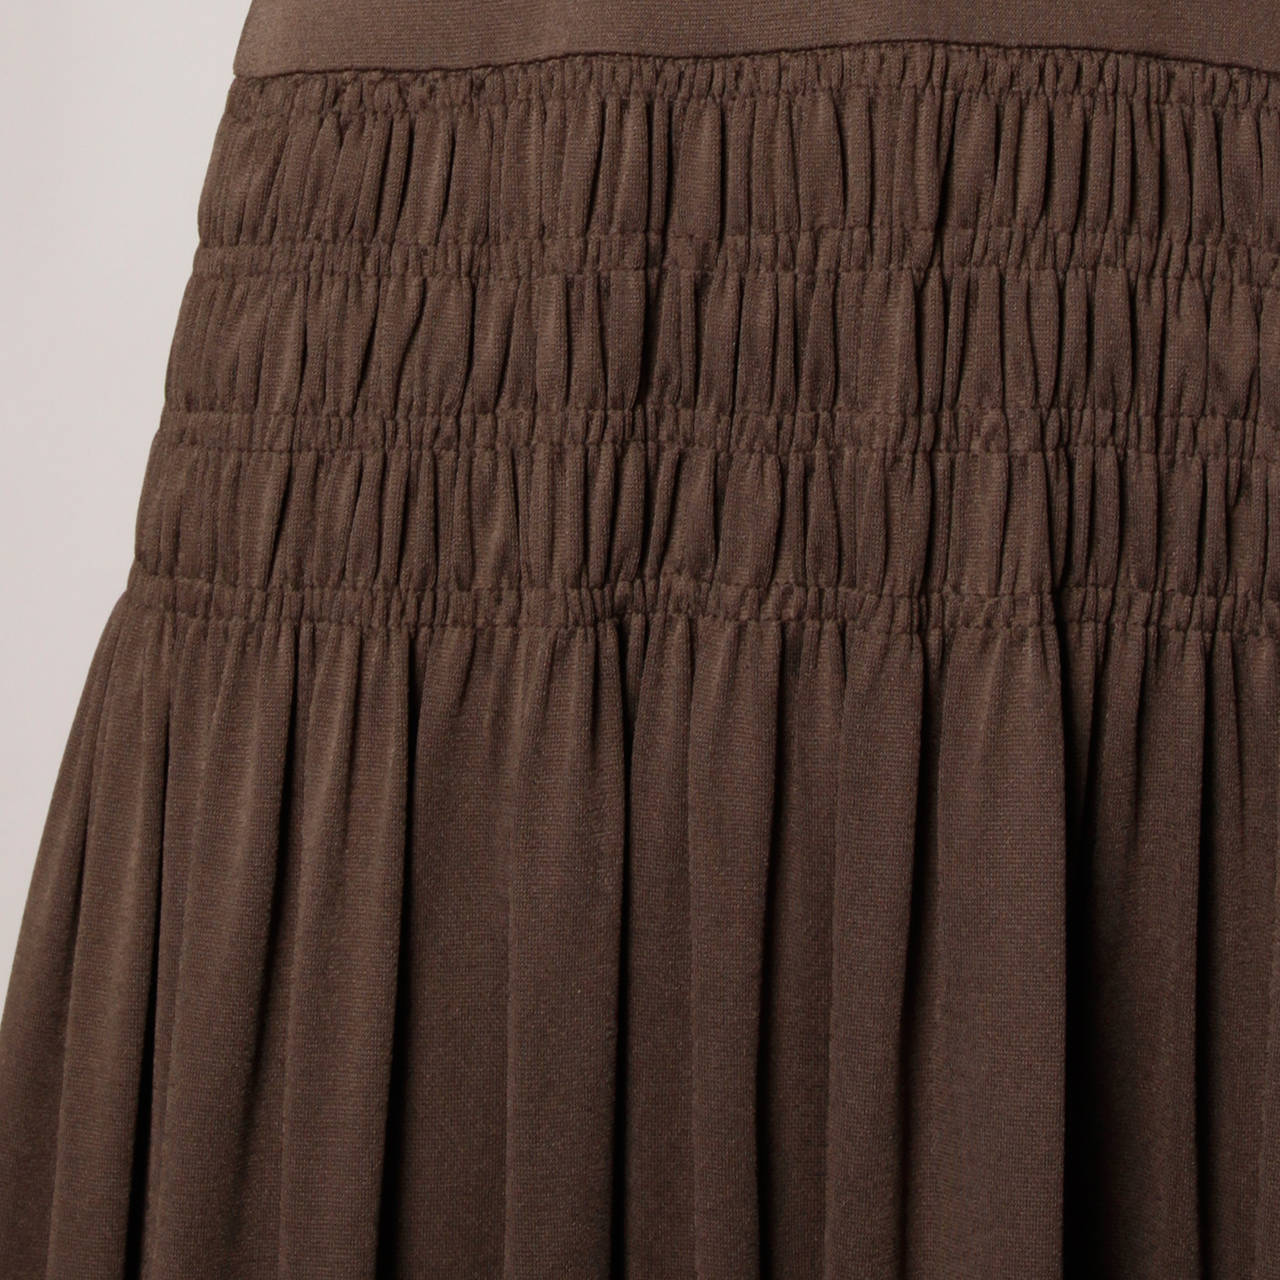 Bill Blass for Saks Fifth Avenue Ruched Brown Jersey Knit Dress For Sale 3